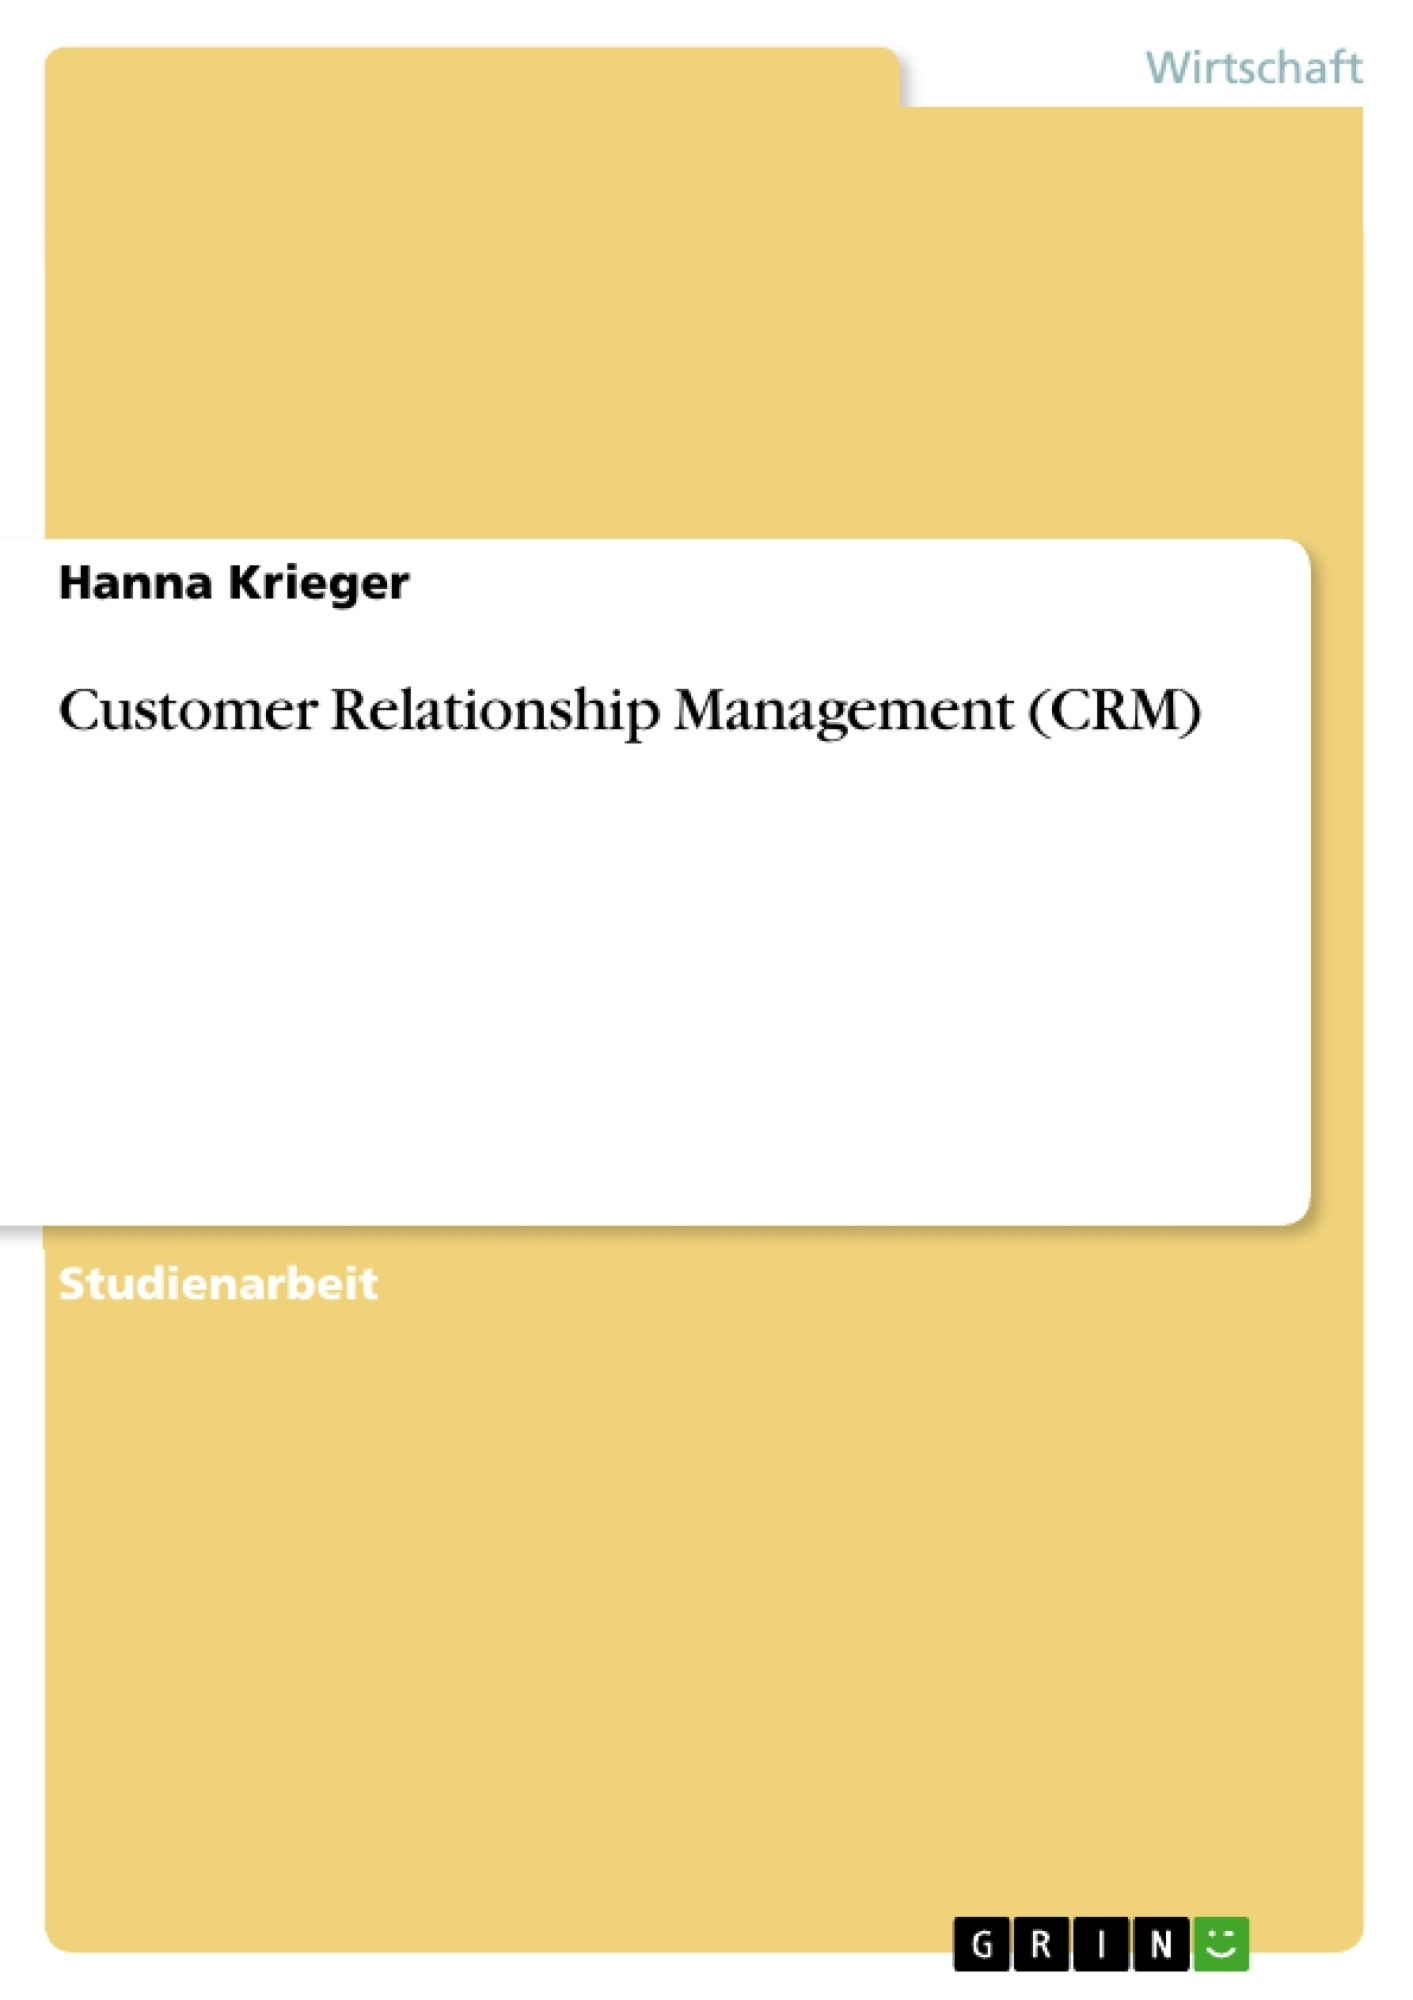 Titel: Customer Relationship Management (CRM)